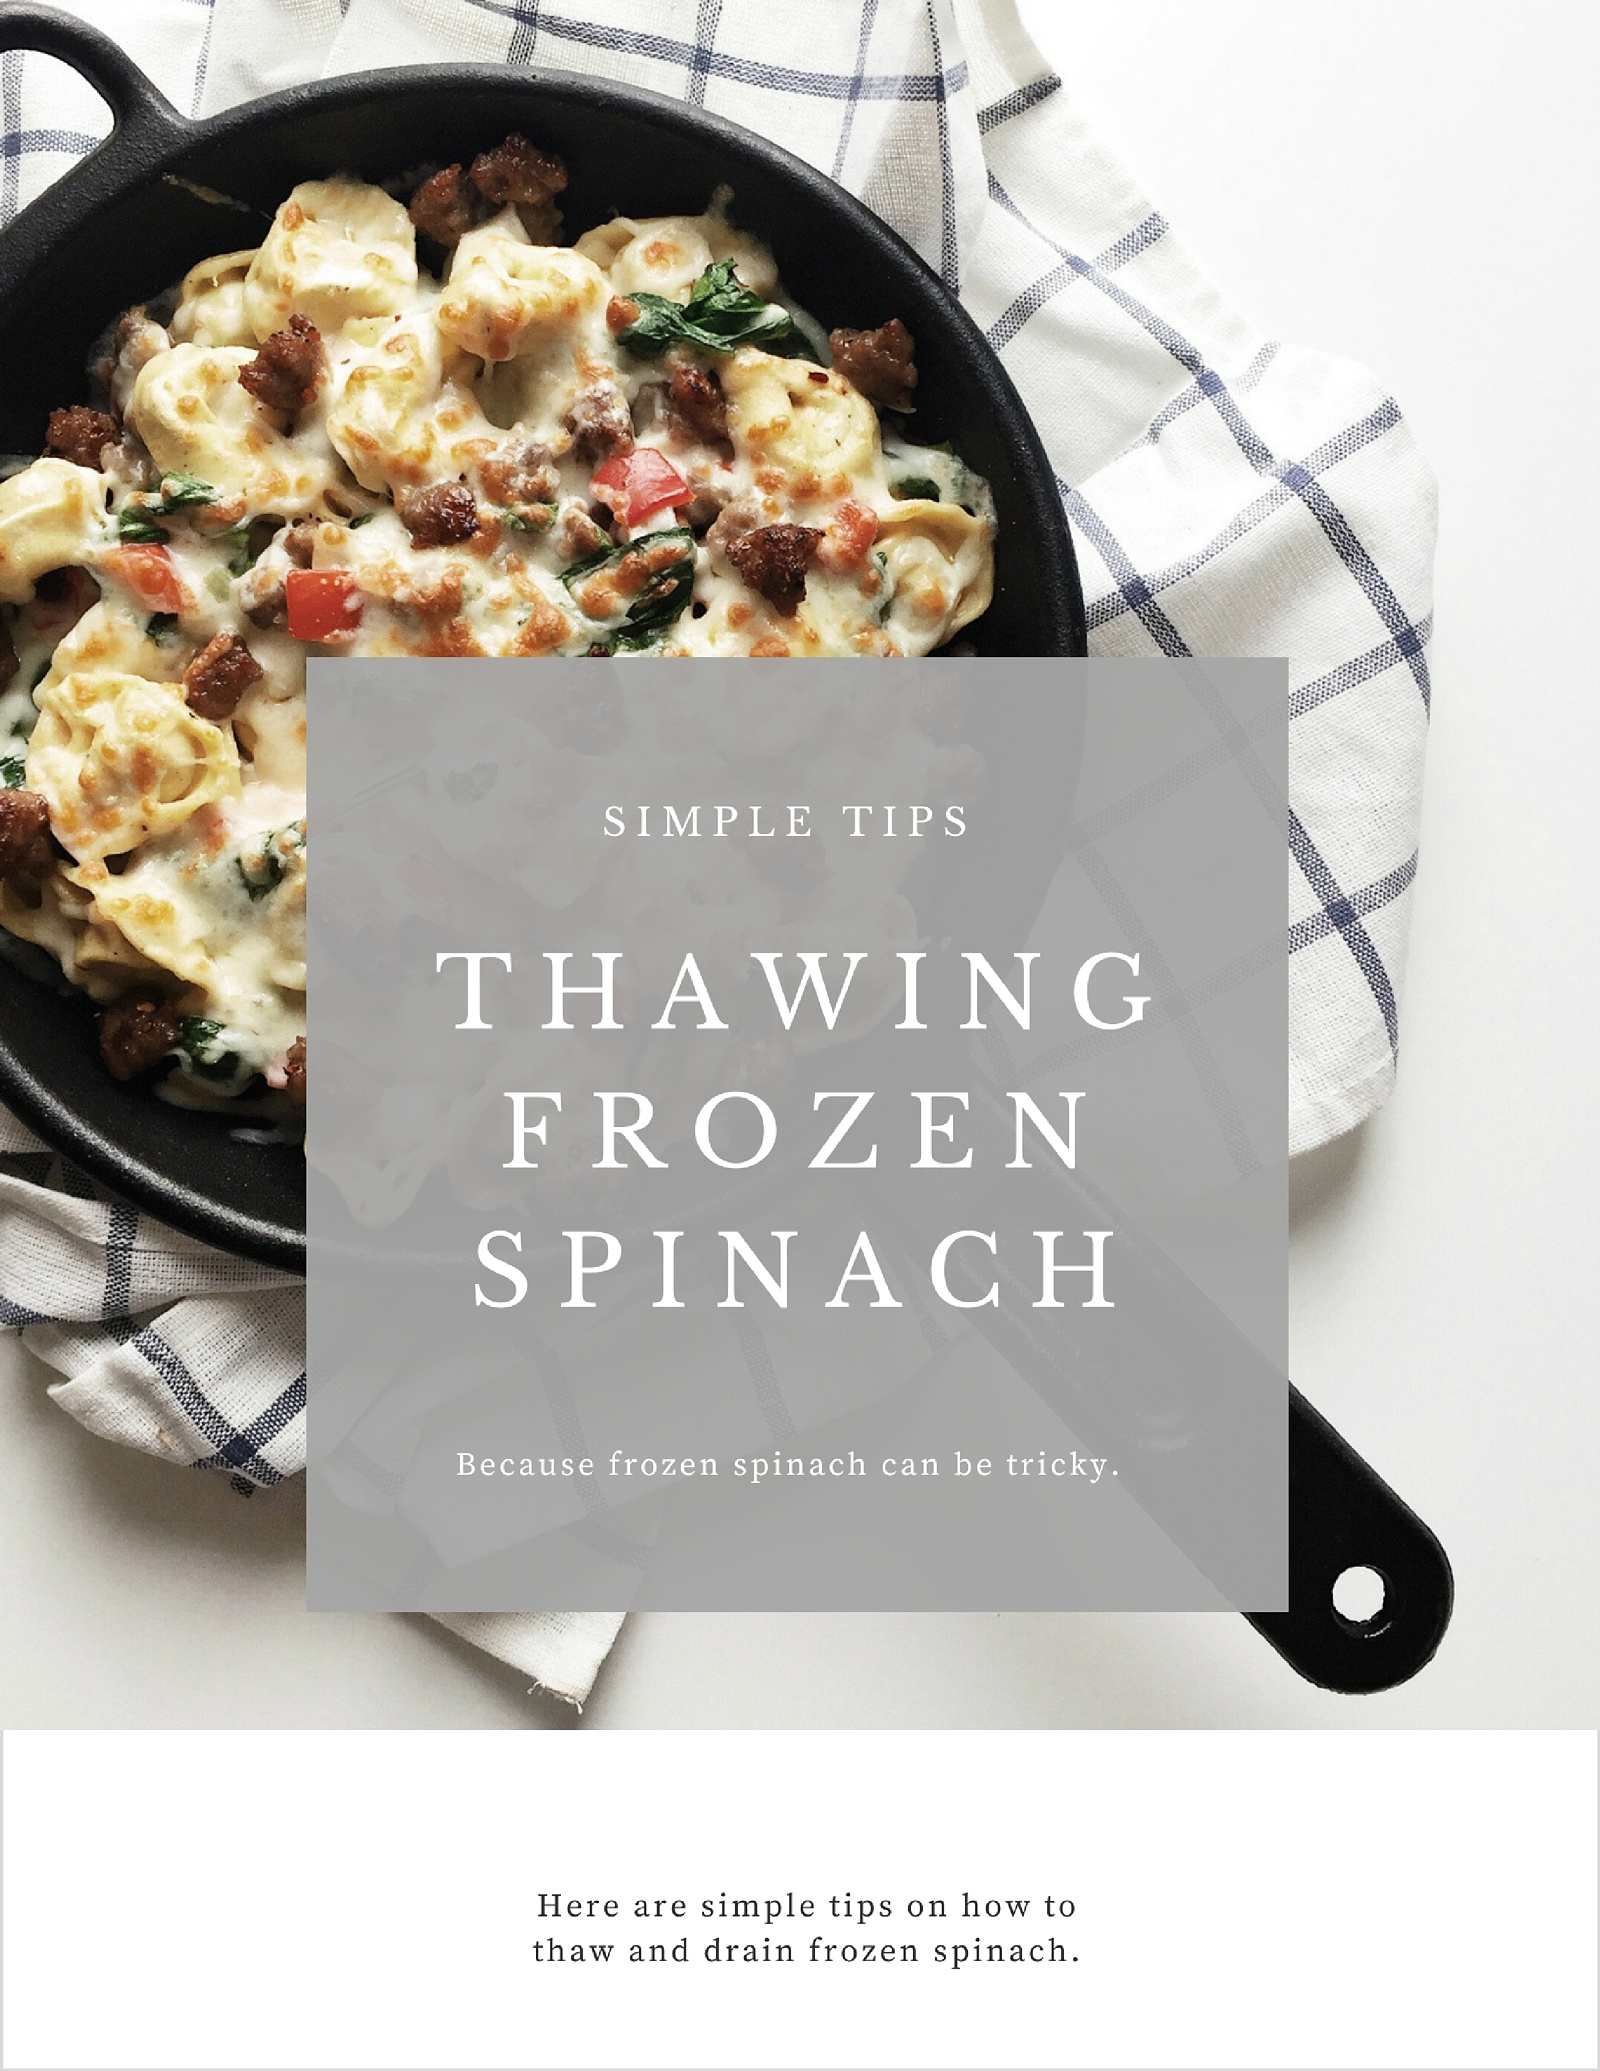 Tips for Thawing and Draining Frozen Spinach